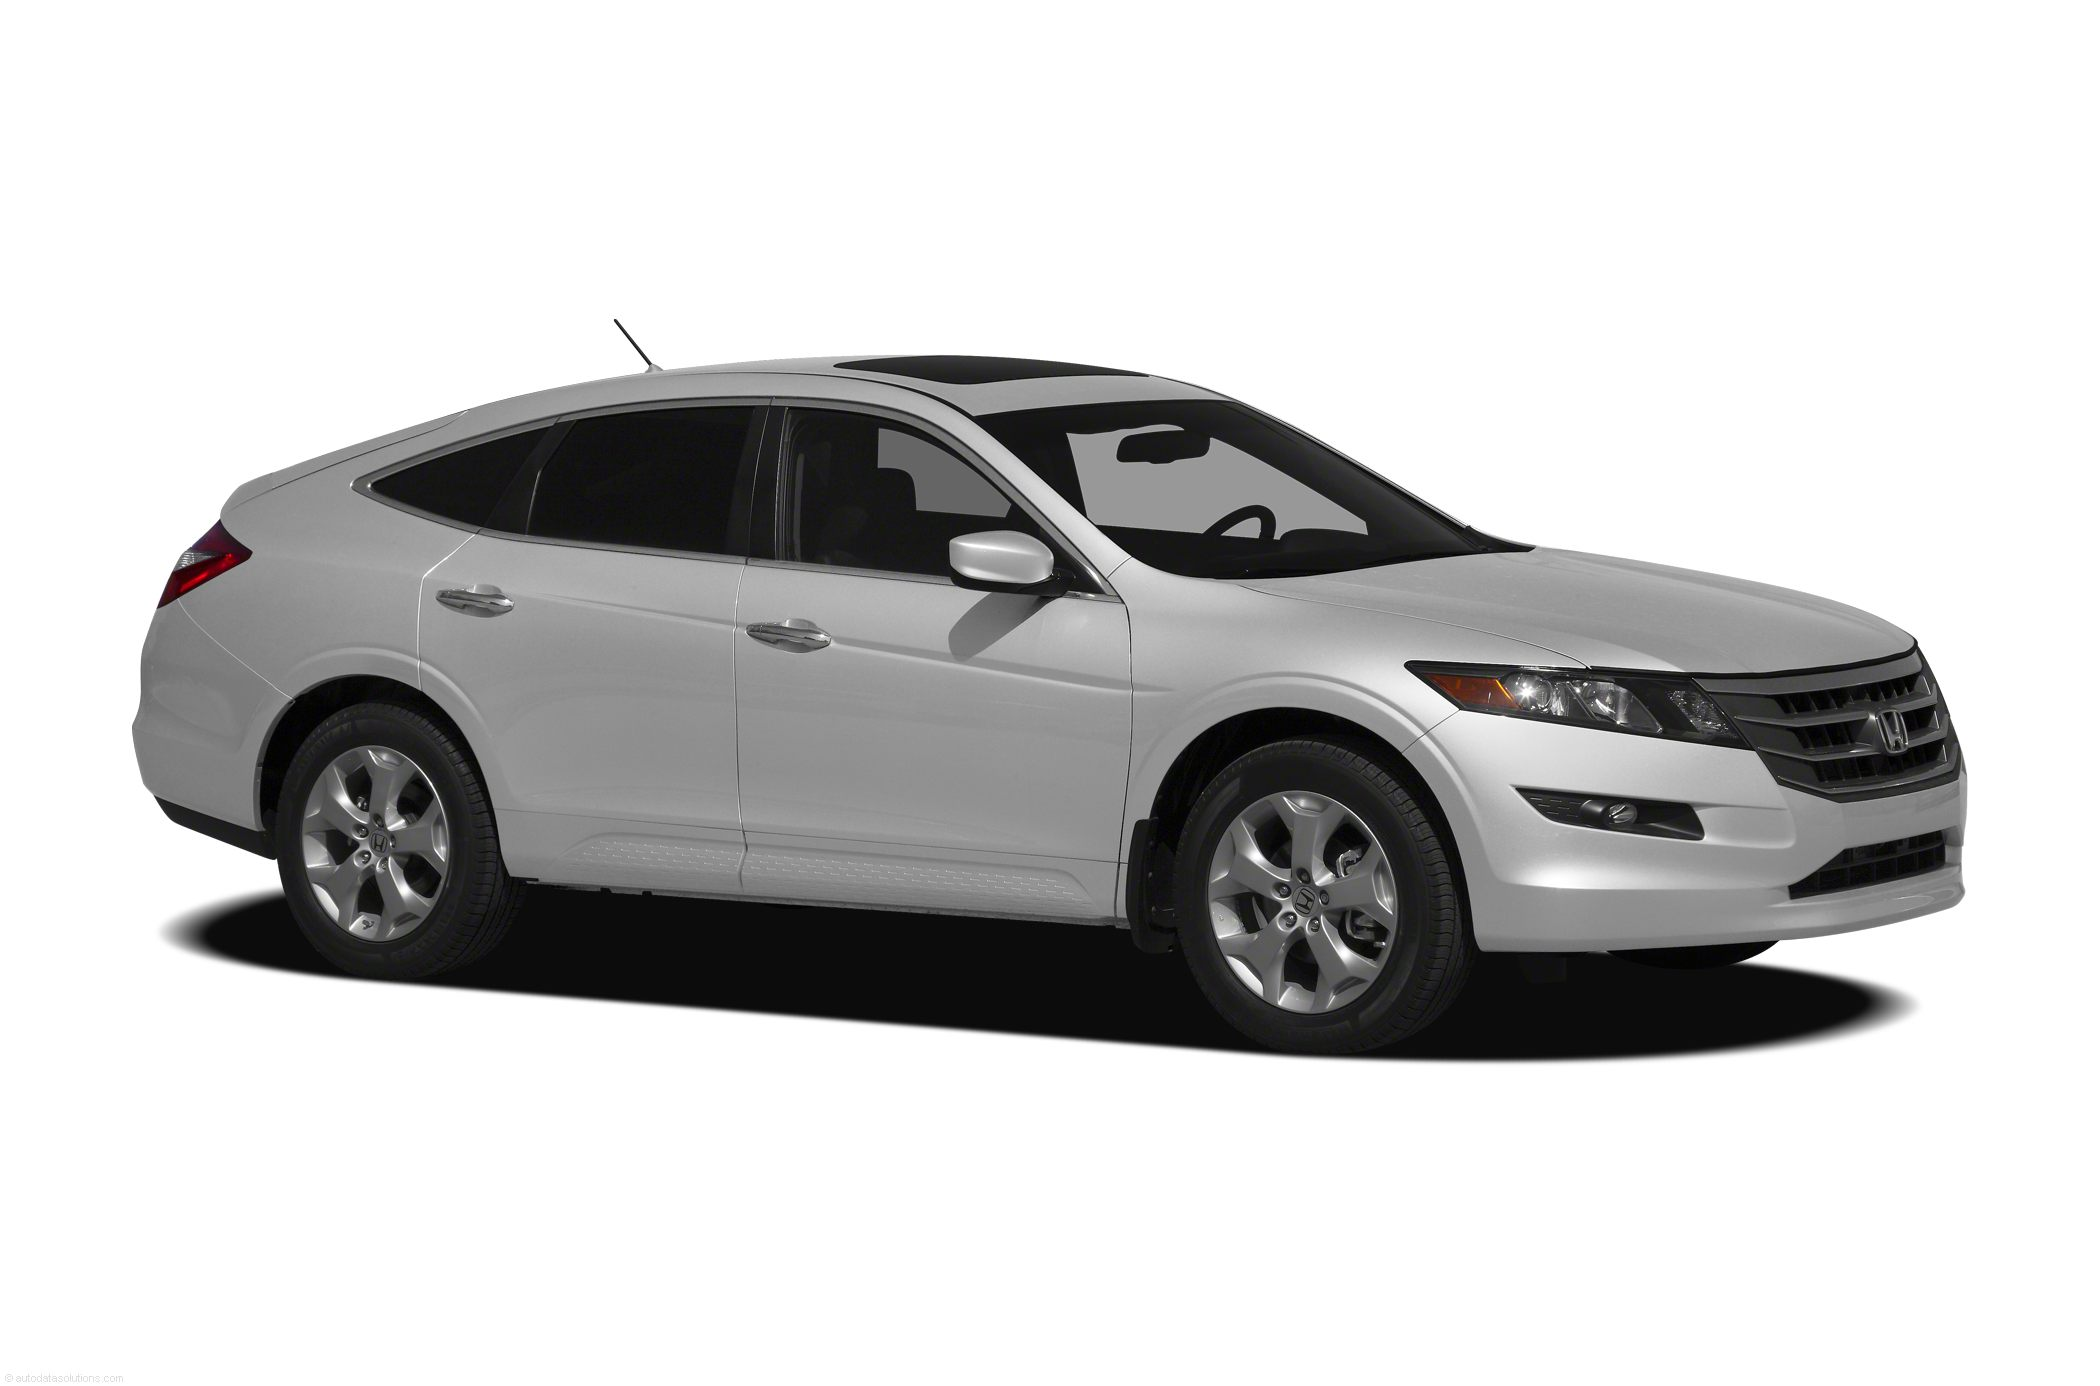 2011 Honda Accord Crosstour #4